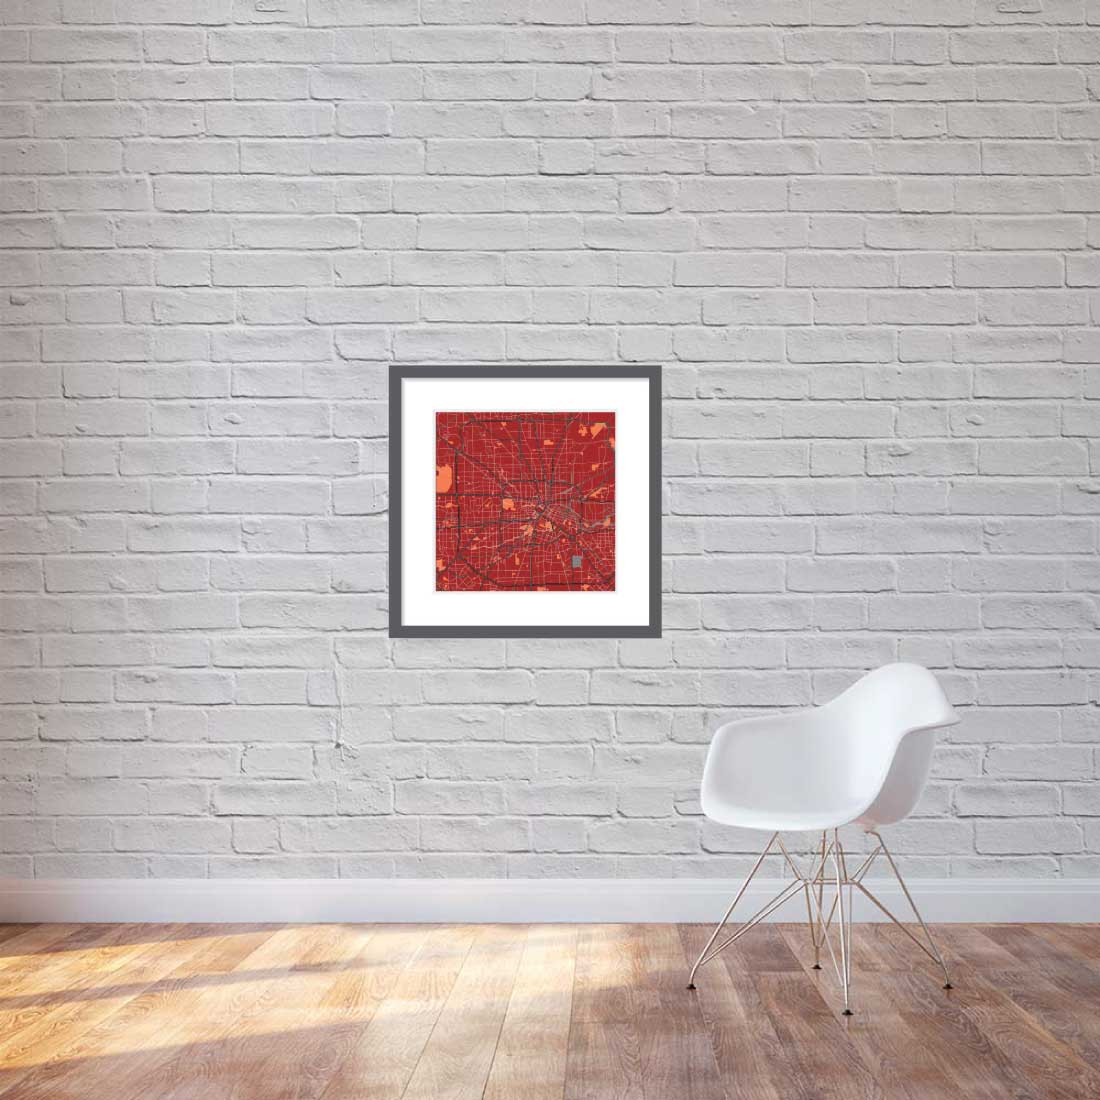 Matt print 60cmx60cm Houston Stylish Brick